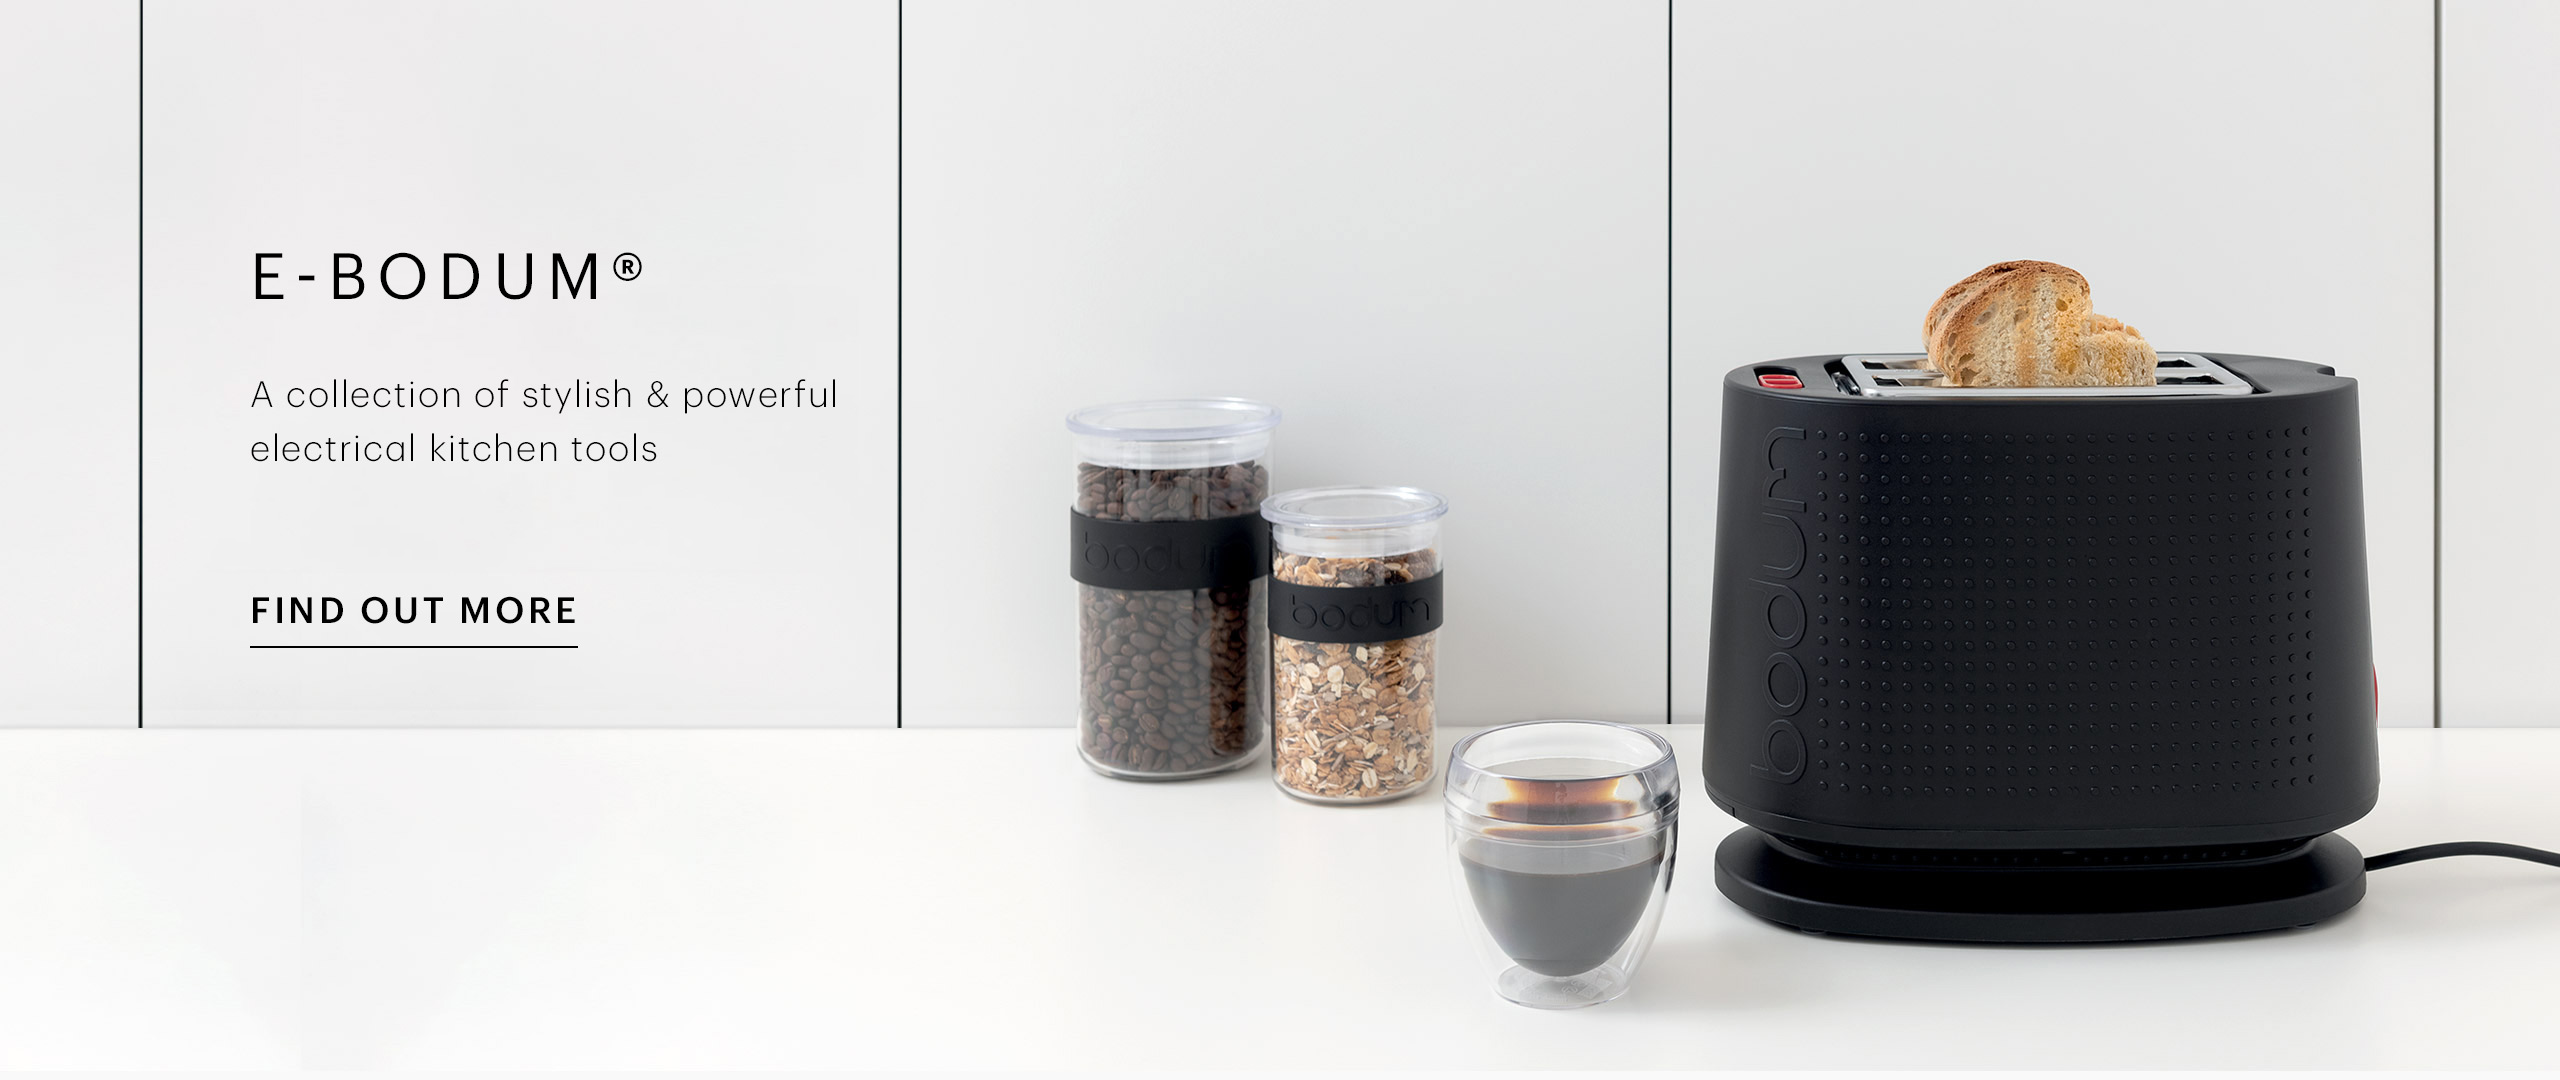 Küchengeräte Amazon Bodum Inspiration And Innovation For Every Kitchen In The World